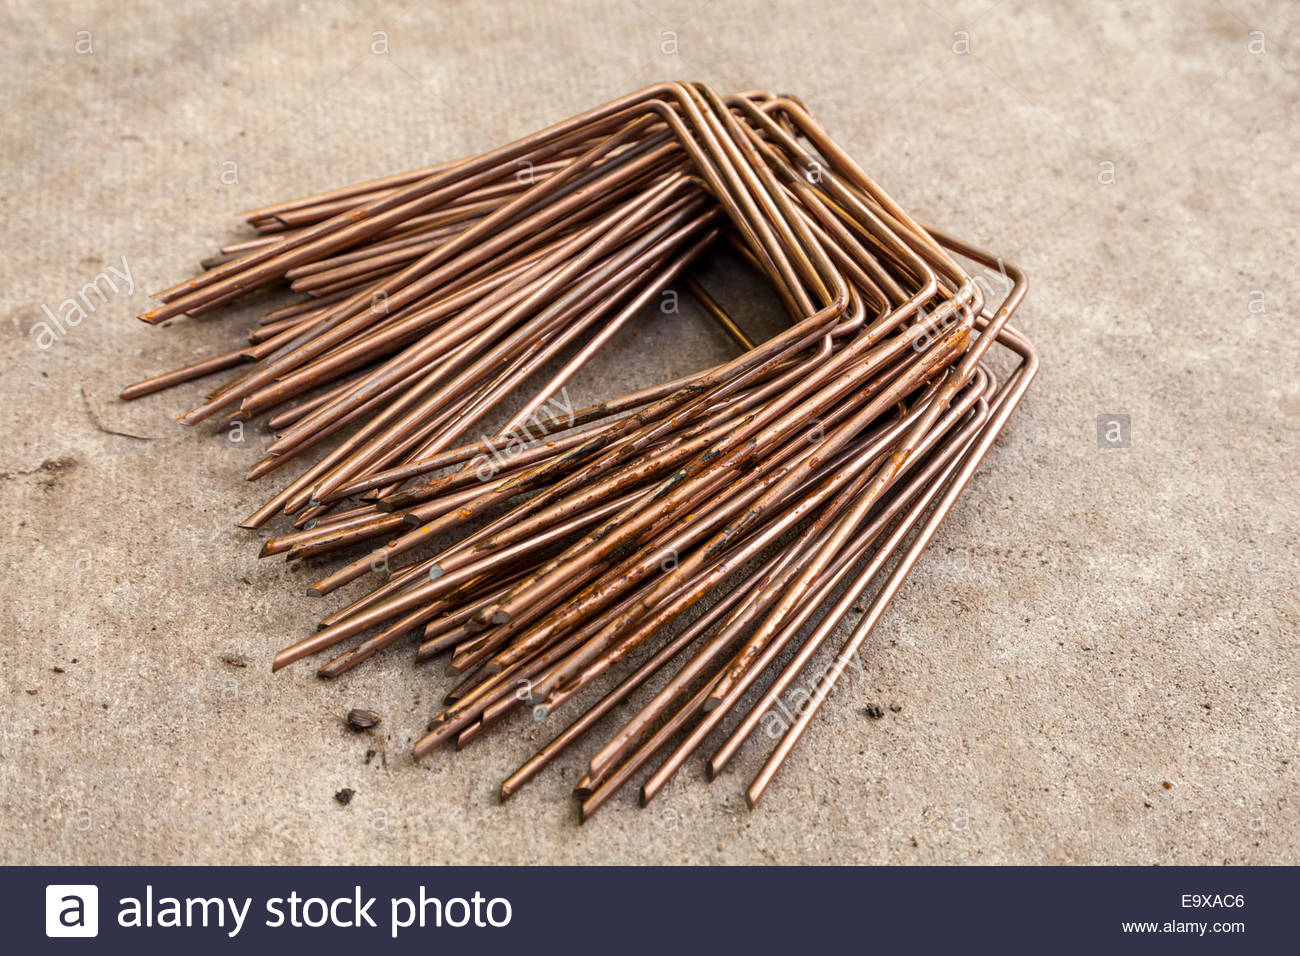 Securing pins or staples for ground fabric - Stock Image